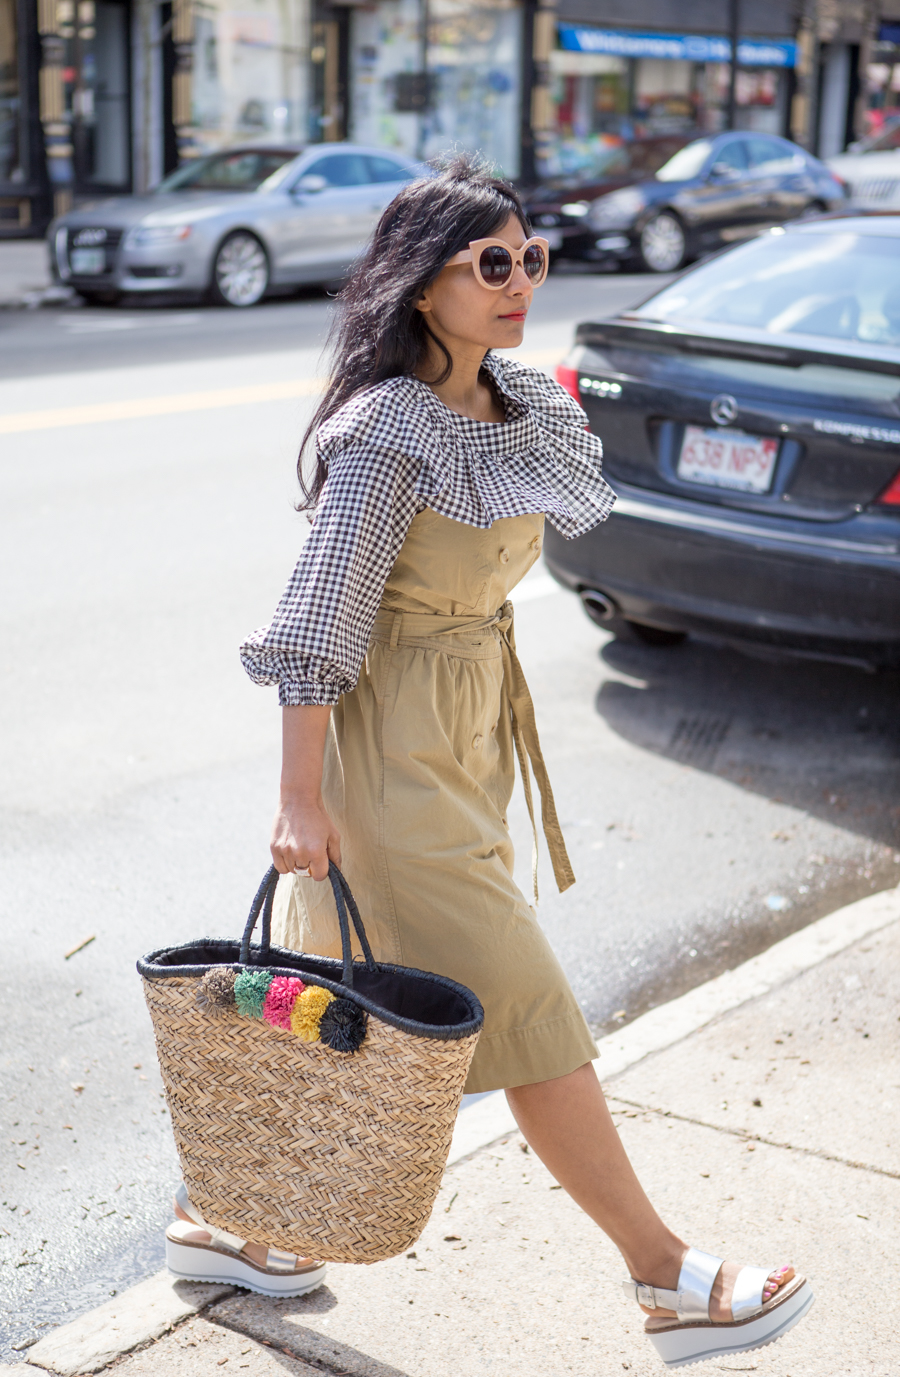 womens fashion, petite style, j.crew style, preppy, fashion-forward, beach tote, summer bag, spring fashion, petite fashionista, style hunter, flatforms, spring fashion trends, gingham, ruffles